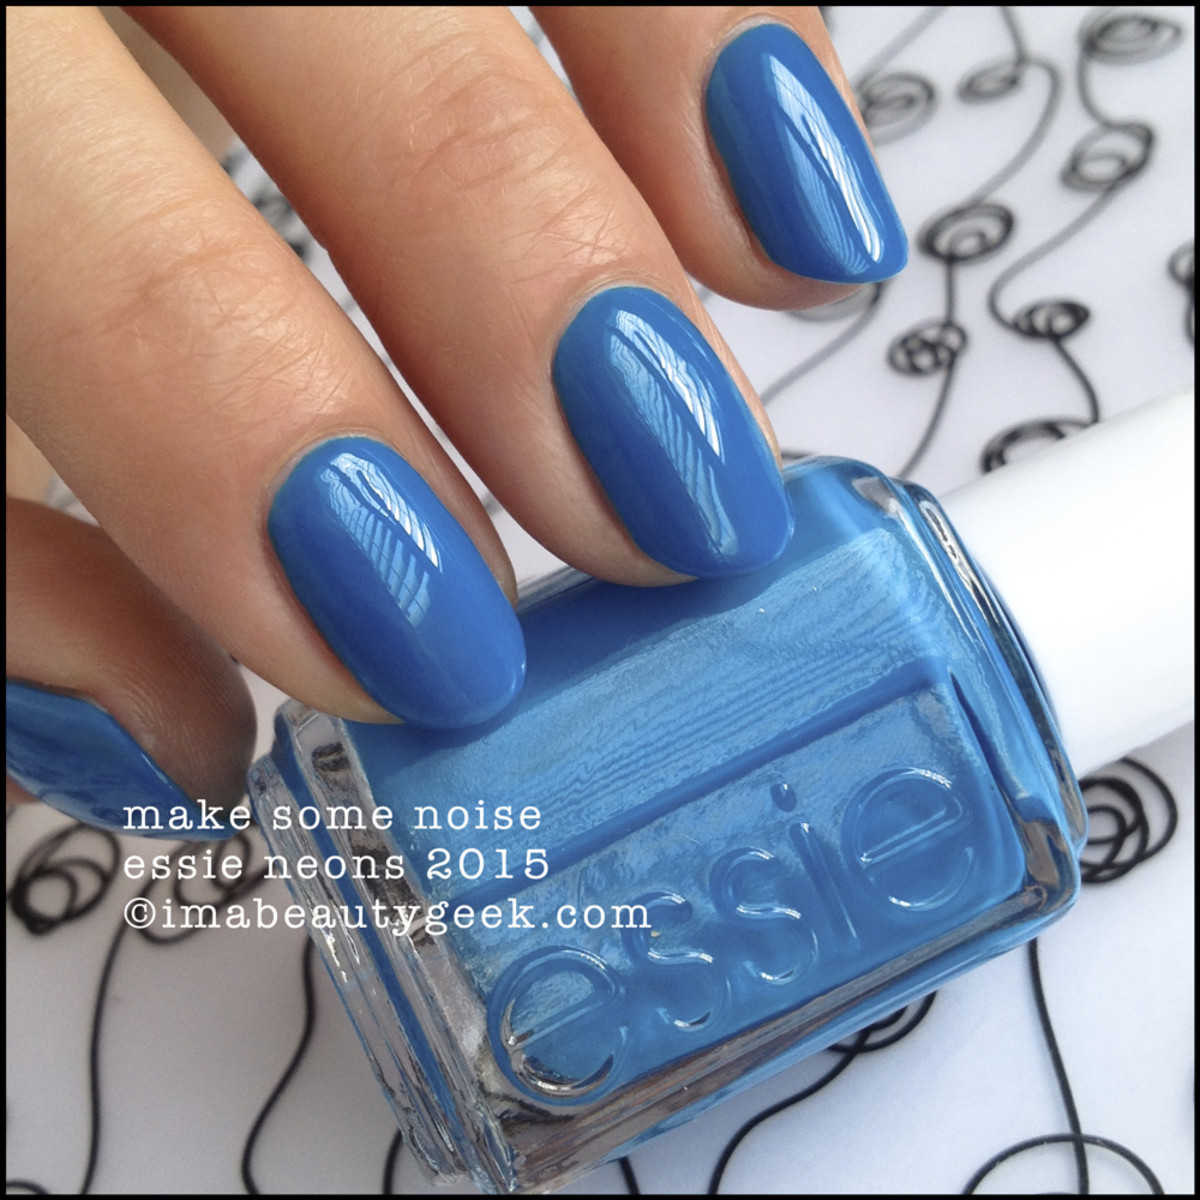 Essie Make Some Noise Essie Neons 2015 Collection